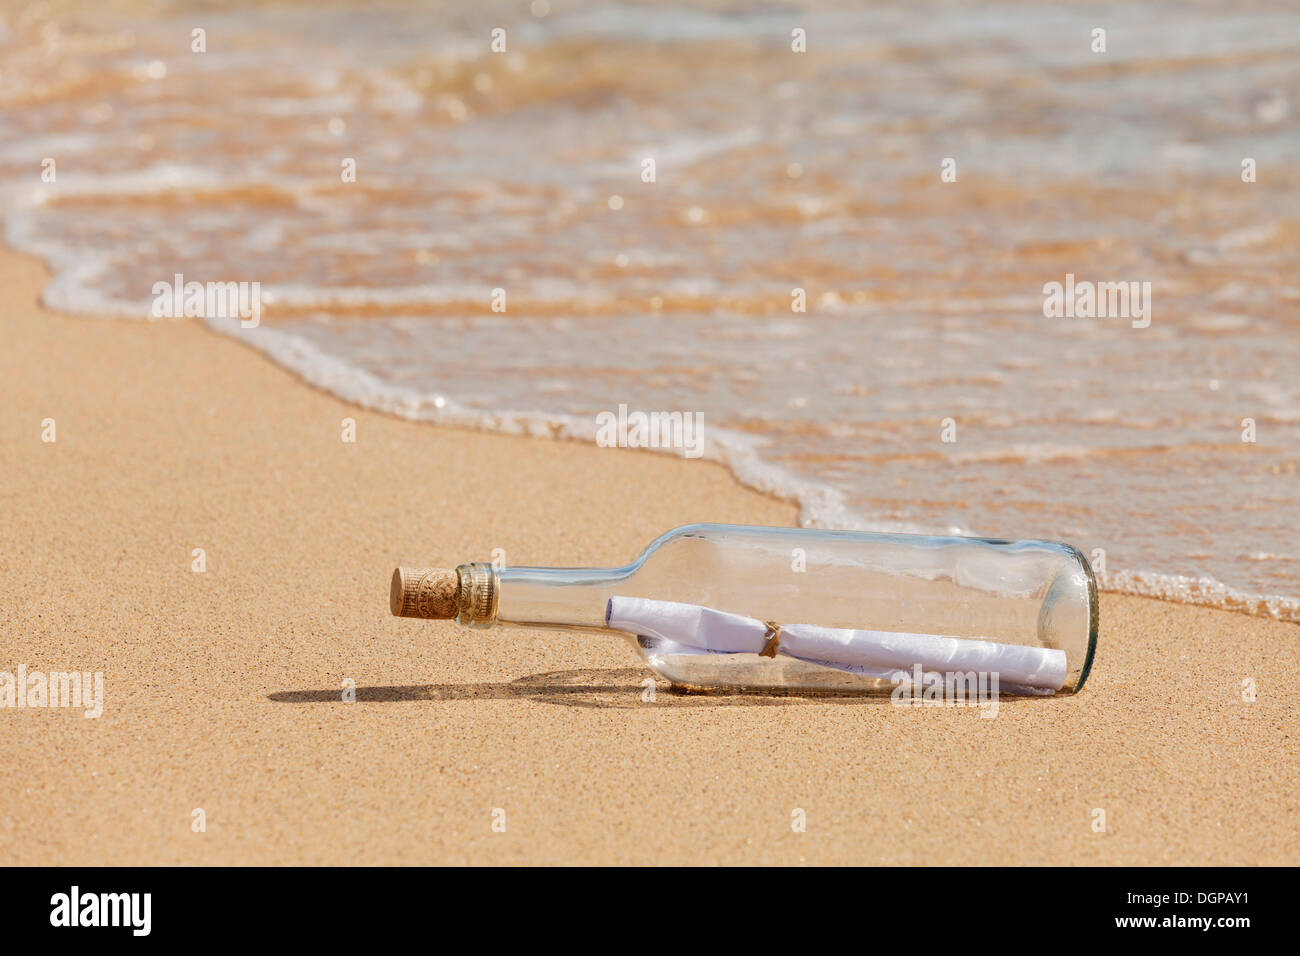 Message in a bottle lying on the beach, Risco del Paso, Fuerteventura, Canary Islands, Spain - Stock Image